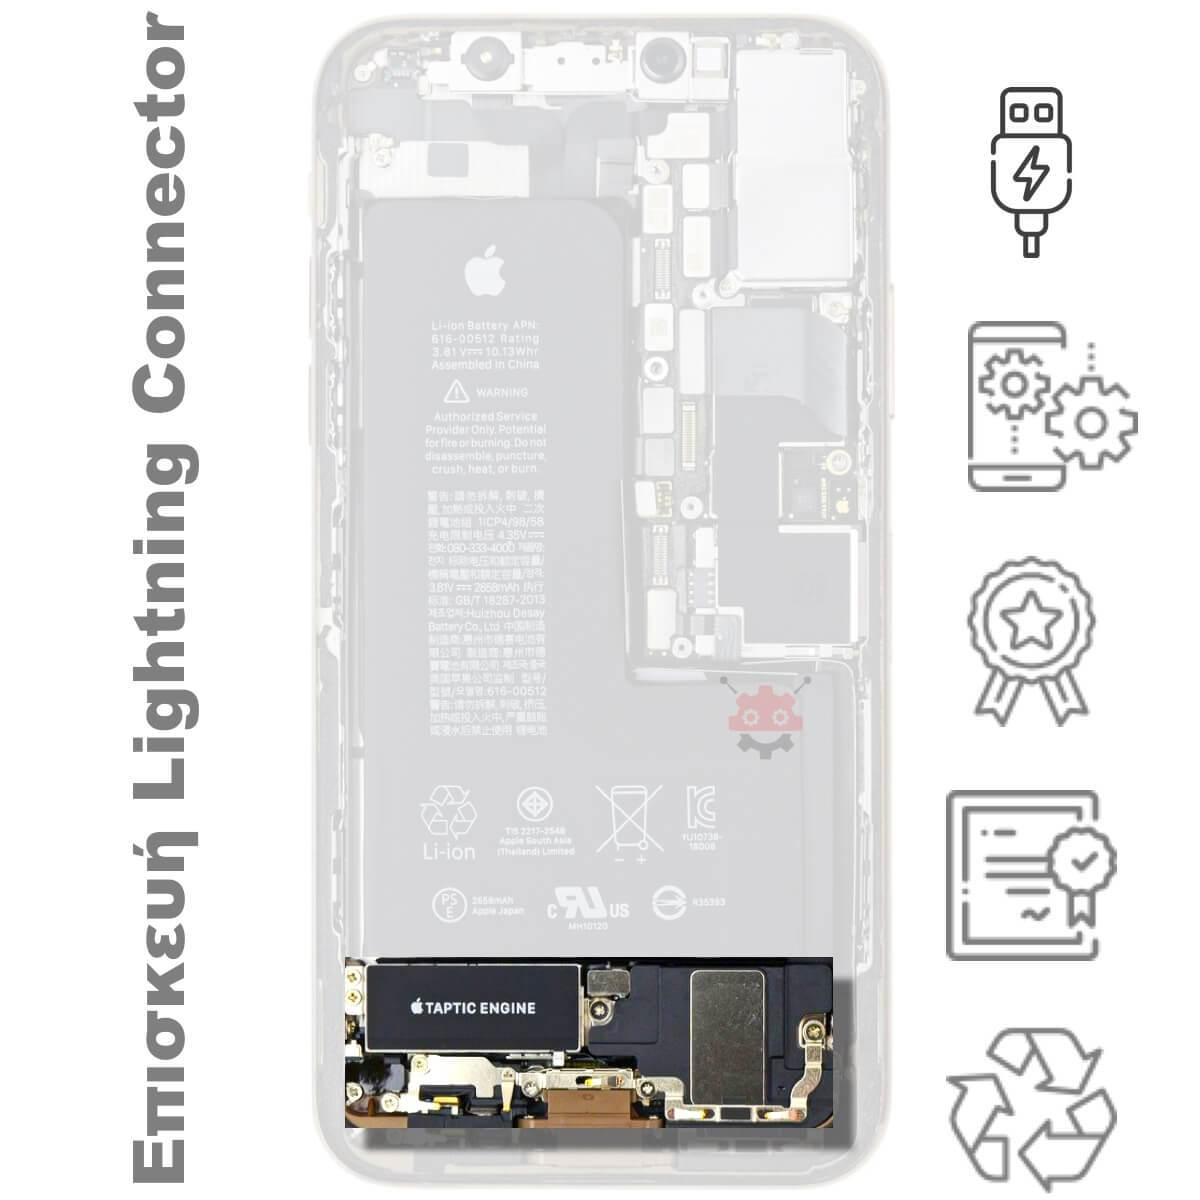 Επισκευή iPhone 6 - HitechDoctor.com